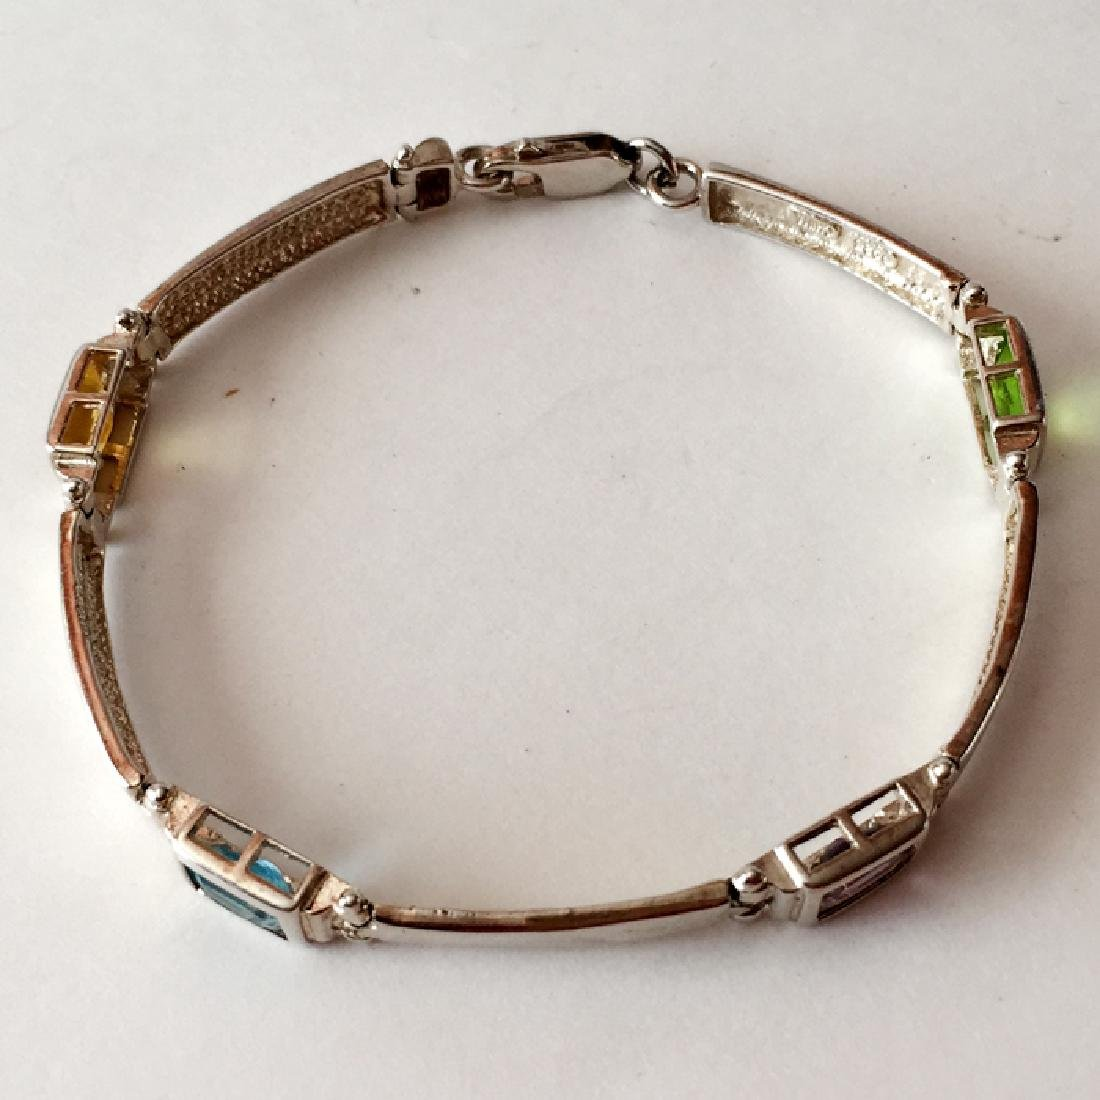 Sterling silver bracelet with lobster clasp and - 3